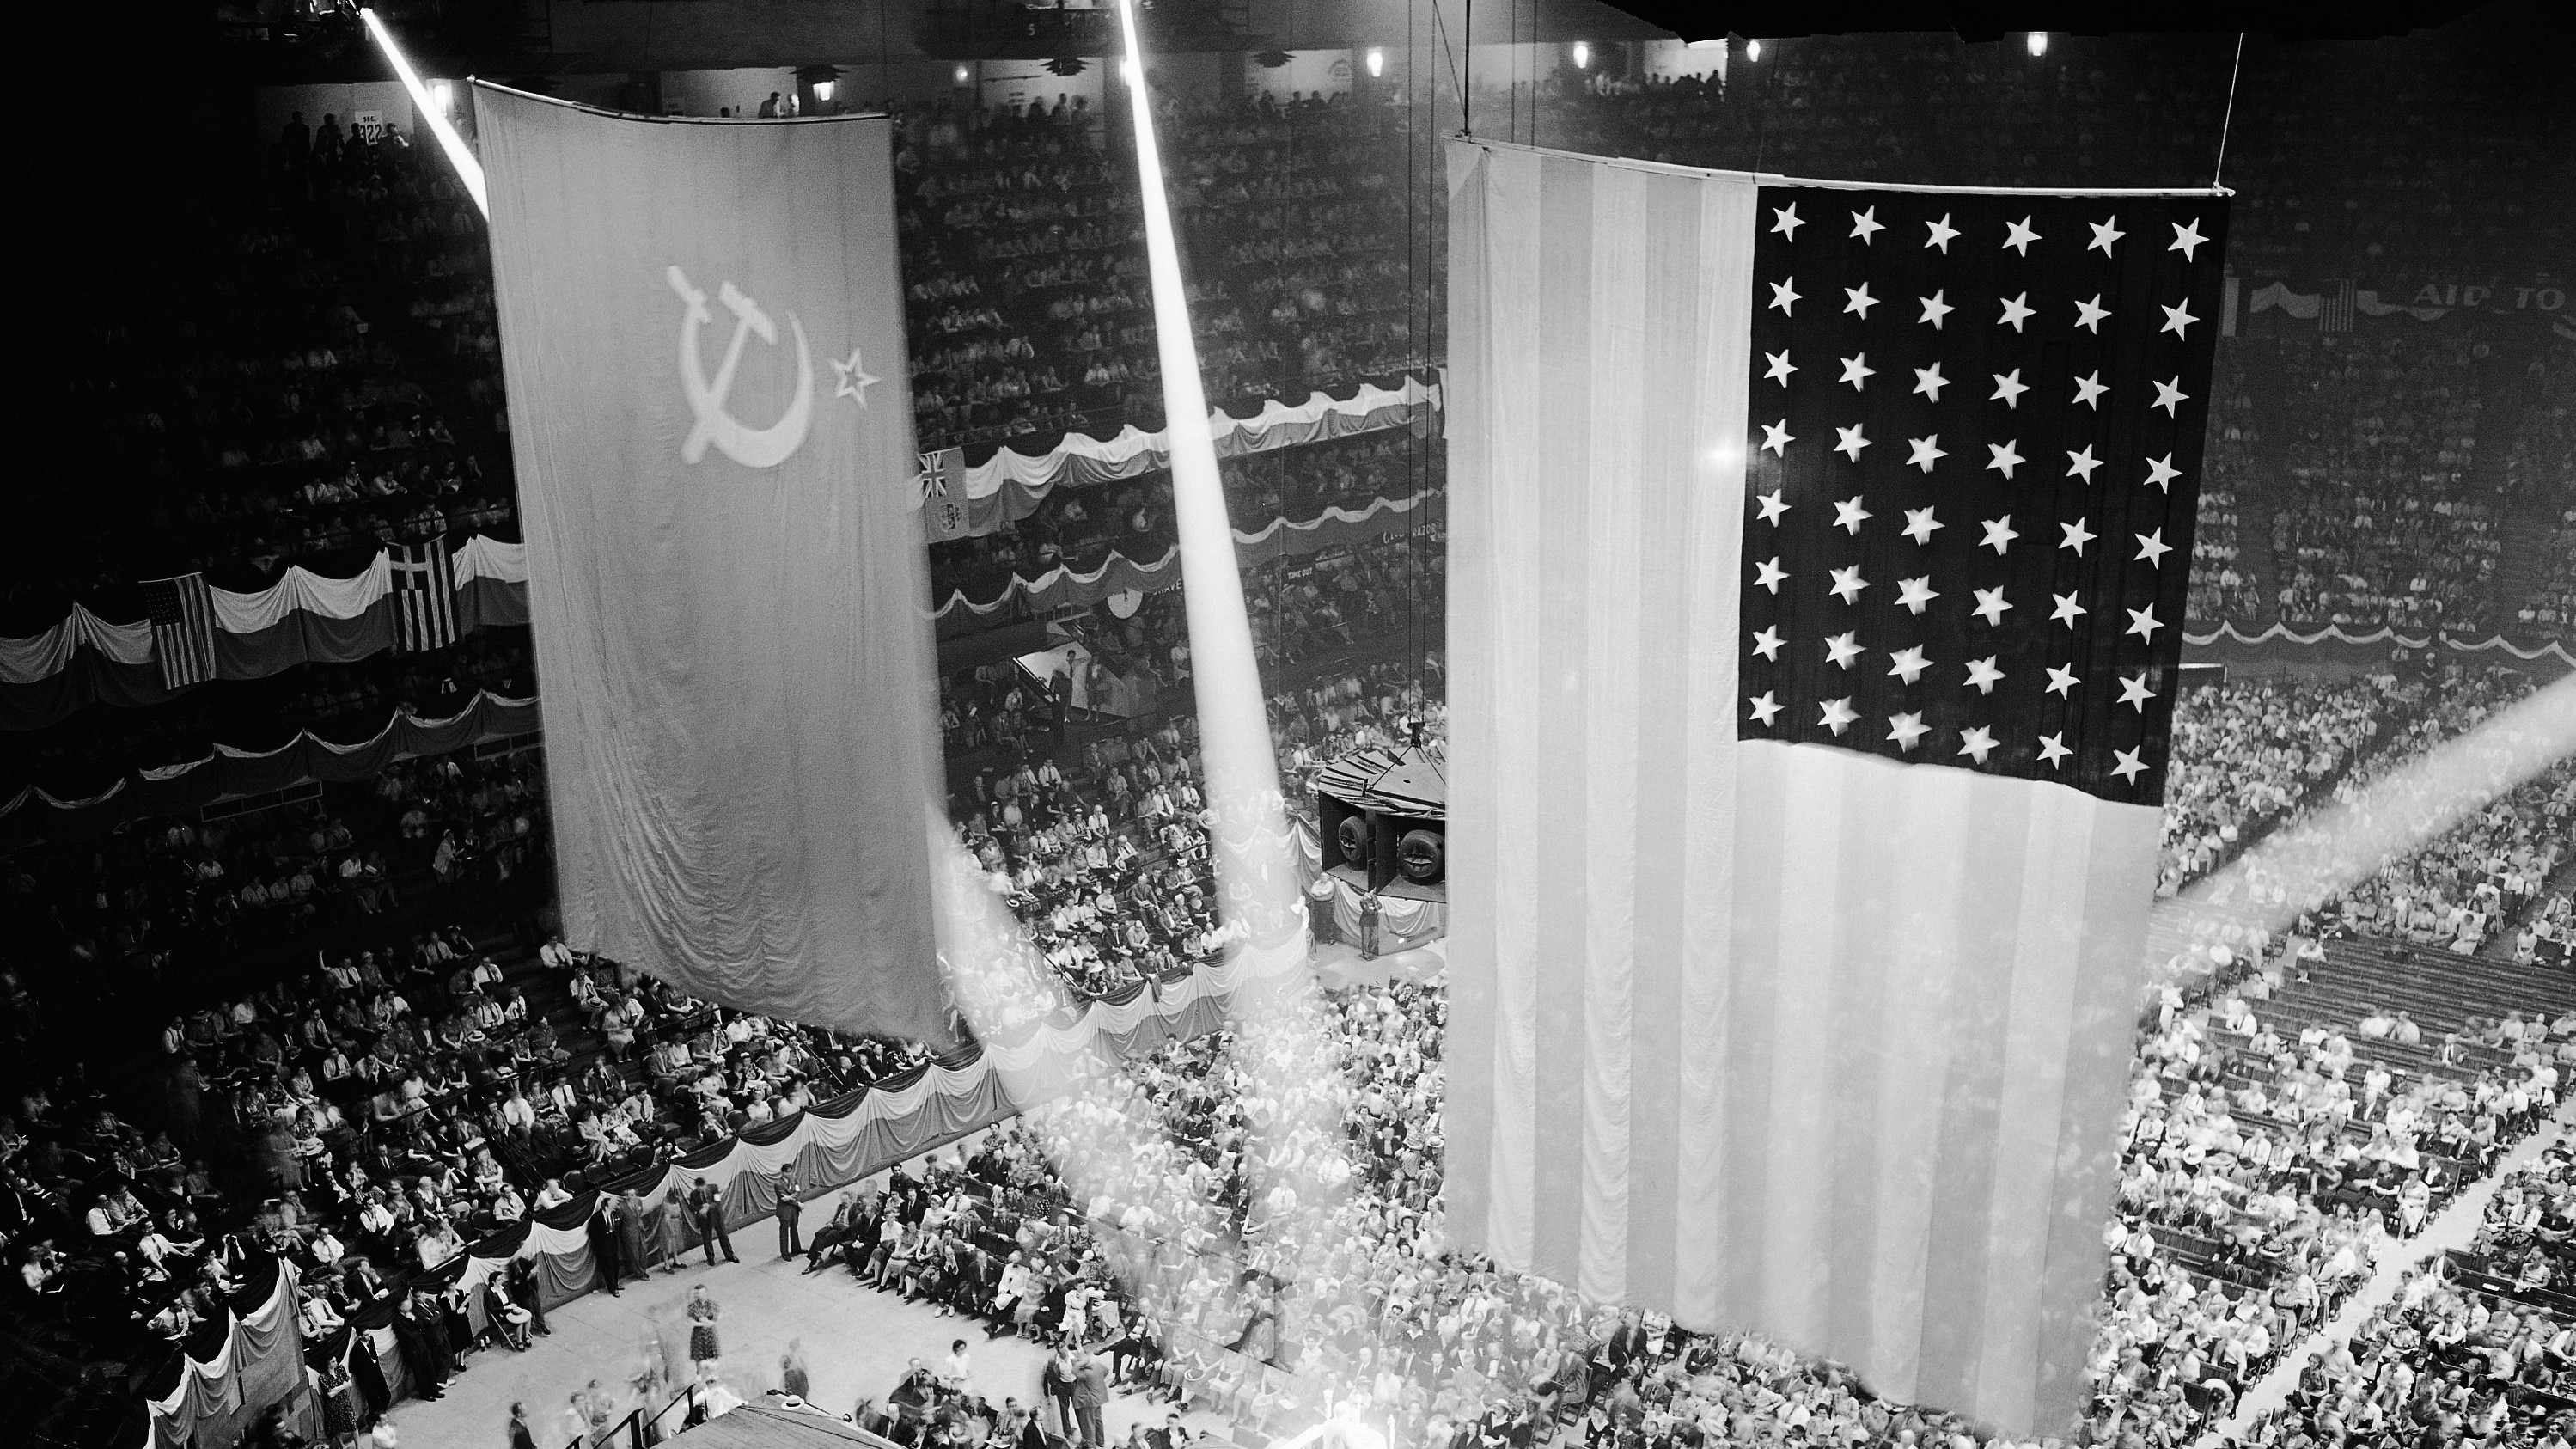 """Long streams of light play on the speaker's platform as the Soviet and American flags hang overhead at the Russian War Relief Rally in Madison Square Garden, New York, June 22, 1942. During the rally a message from President Roosevelt announced that the United States would give Russia aid on the battlefield. Ambassador from Russia, Maxim Litvinov declared that Hitler """"staked his all"""" in his latest offensive."""